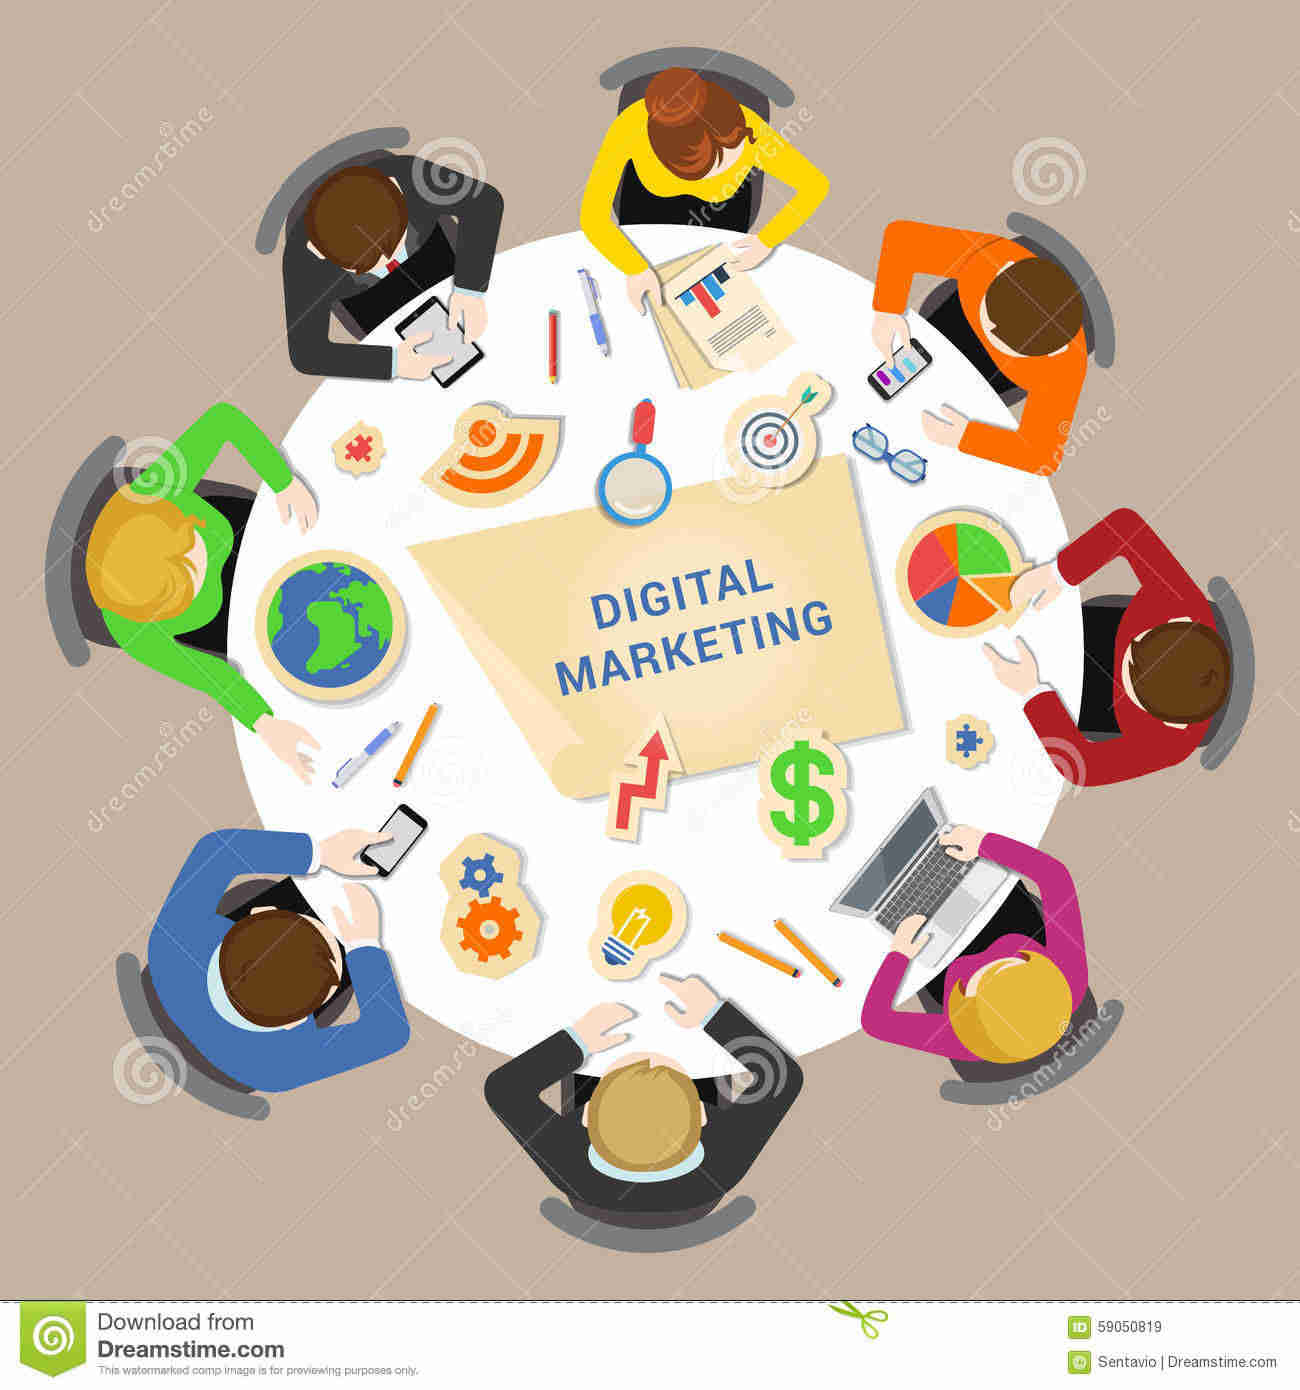 Digital-Marketing-Refresher-Course